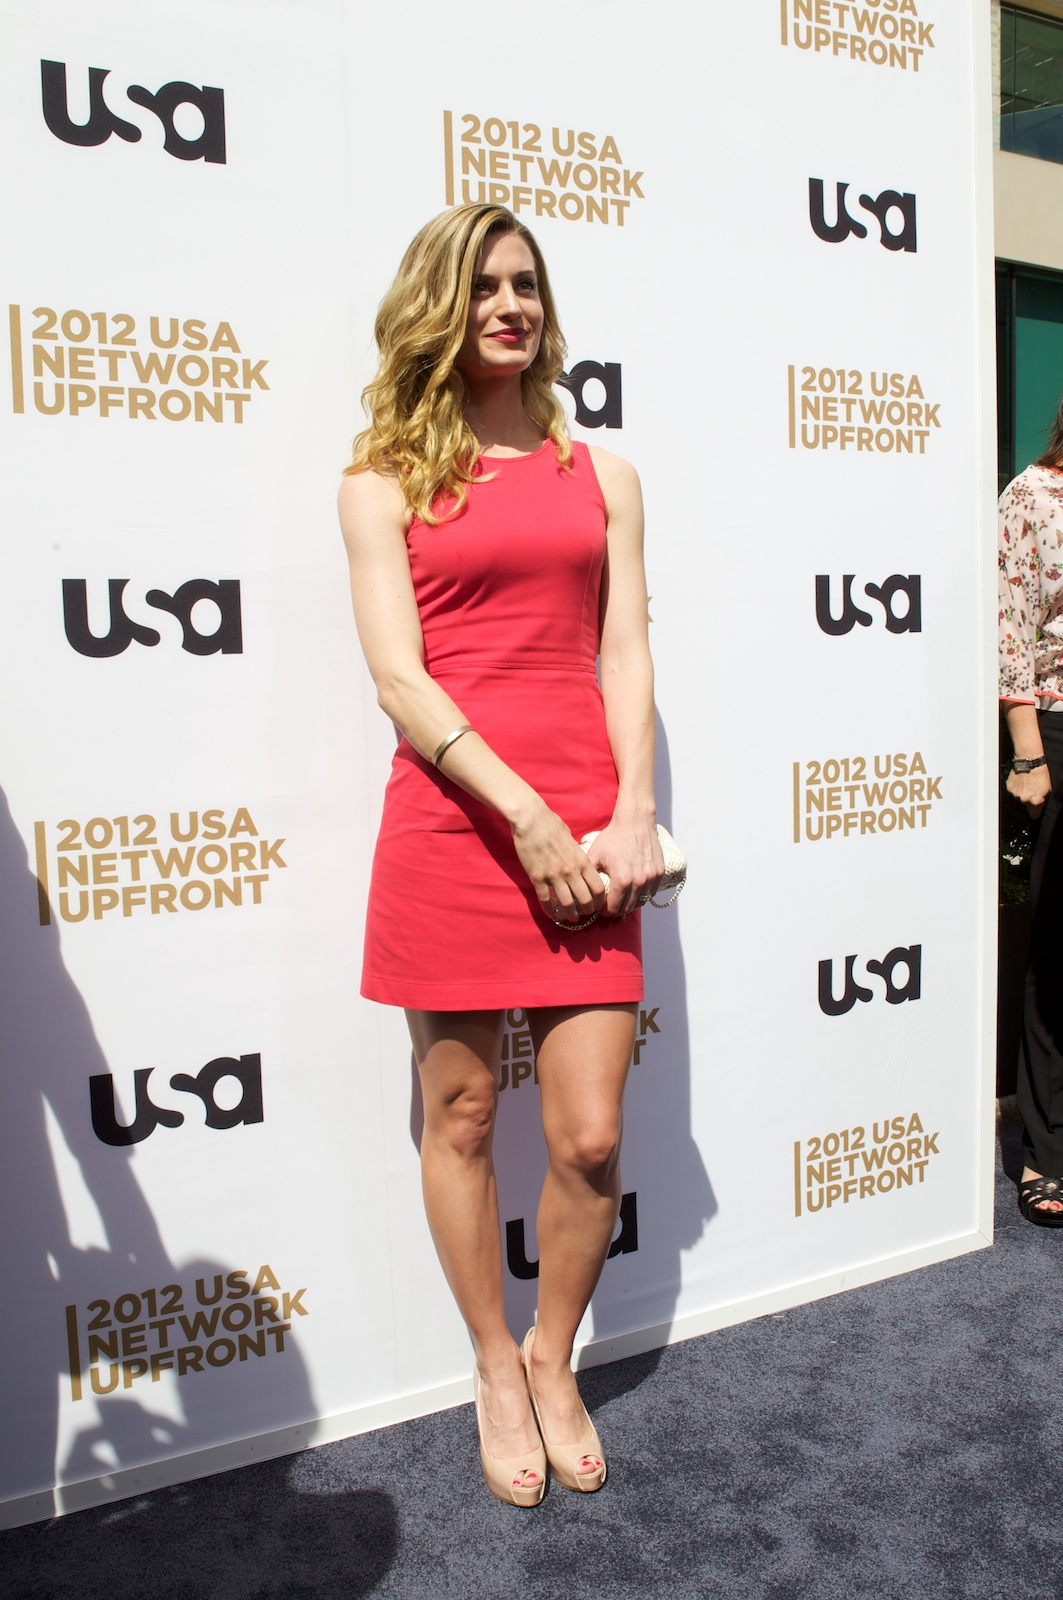 USA Red Carpet Upfront 2012  079.jpg